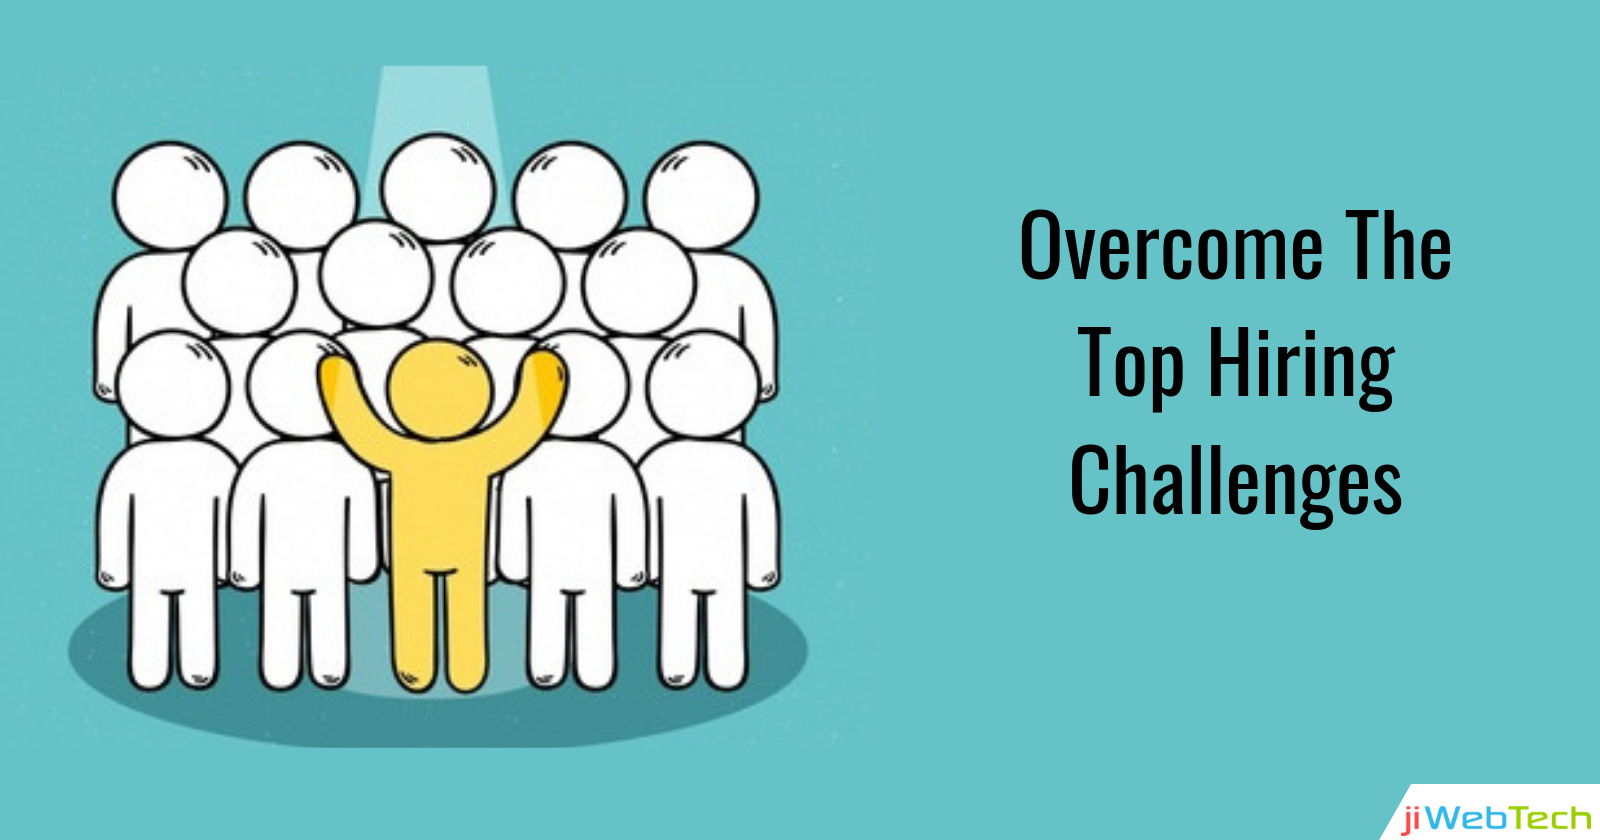 The Most Common Recruiting Challenges and How to Overcome Them